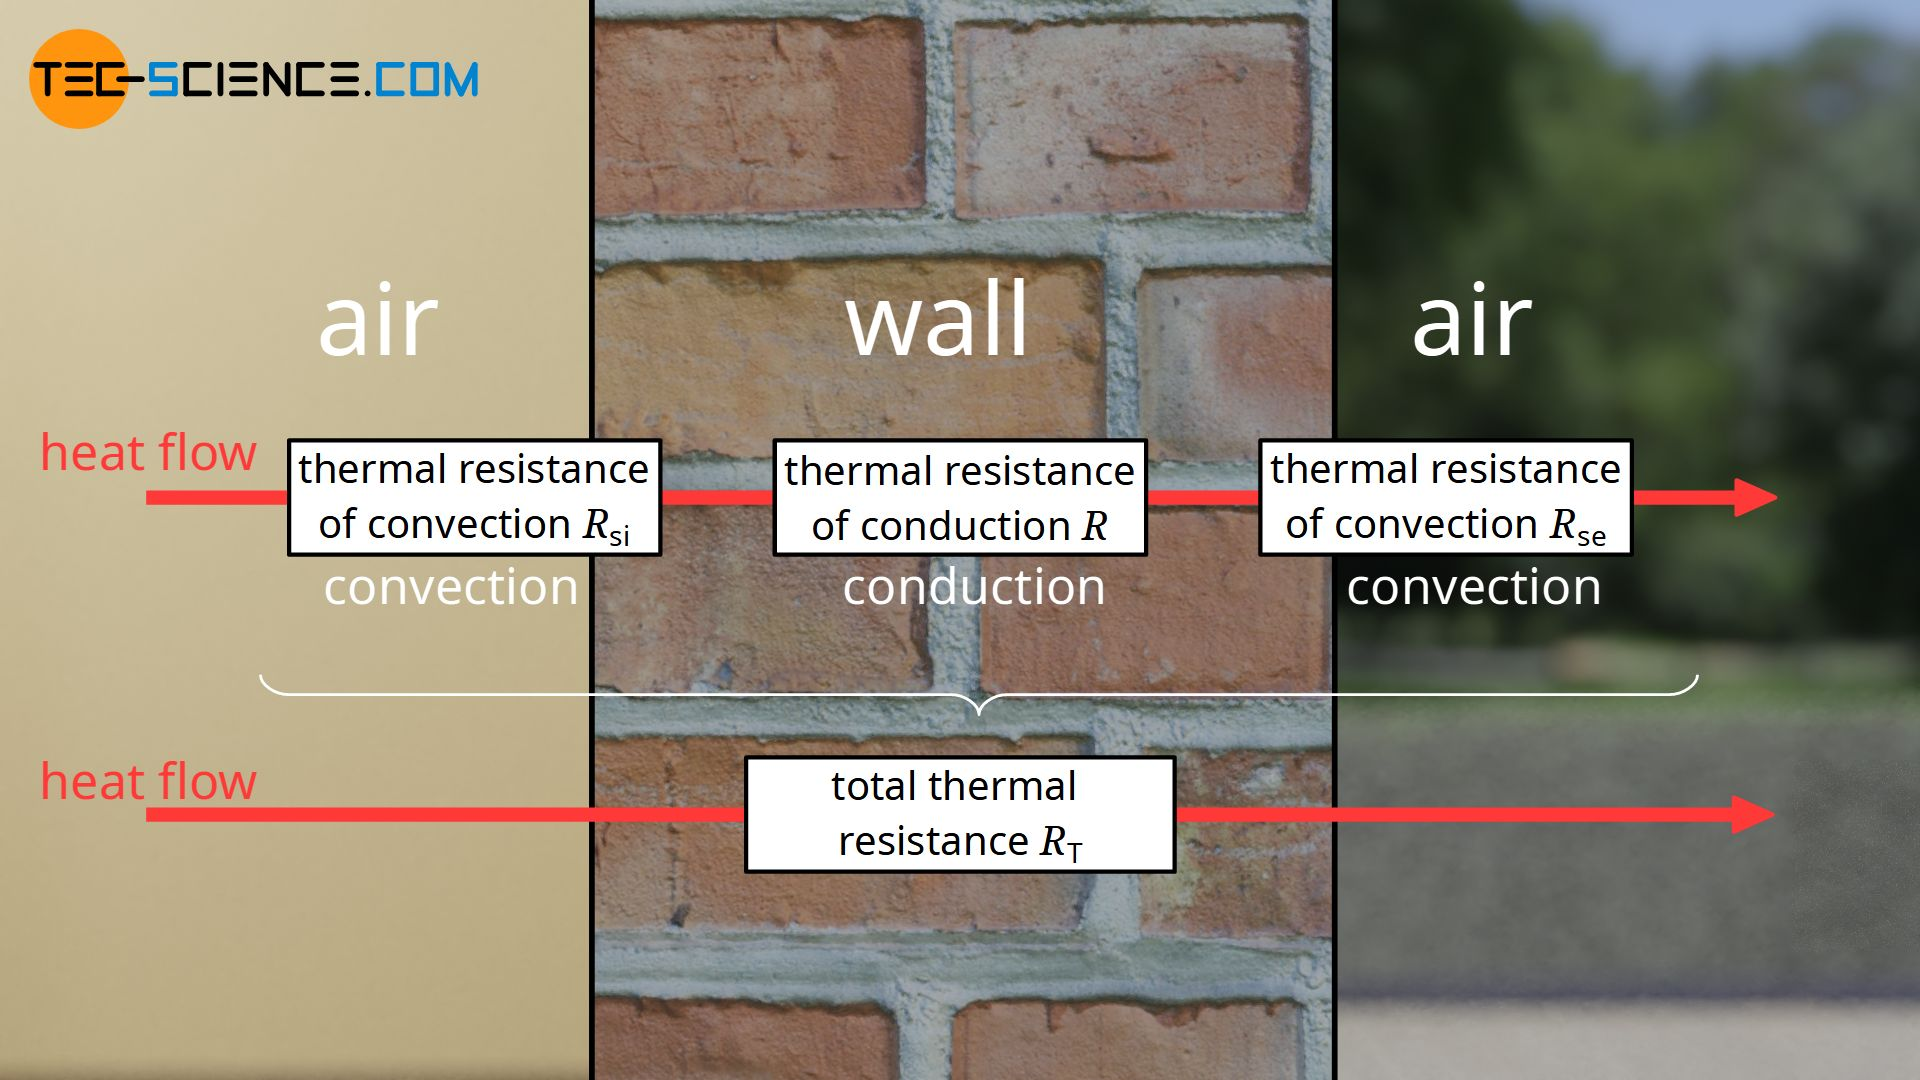 Thermal resistance of convection and conduction and total thermal resistance